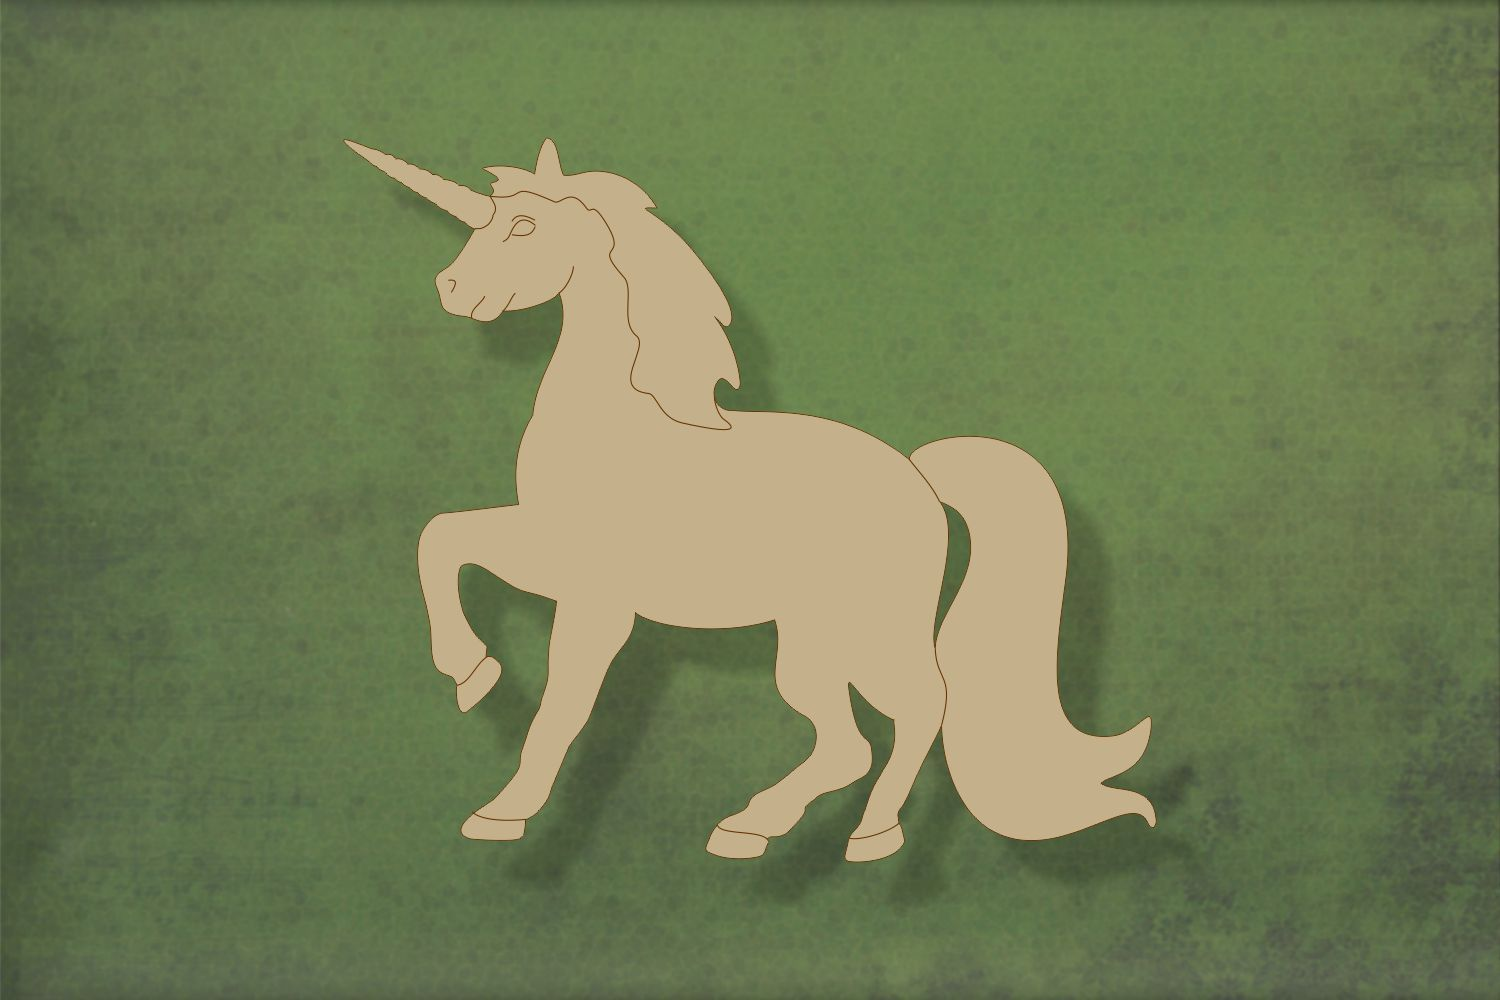 Laser cut, blank wooden Unicorn with etched detail shape for craft